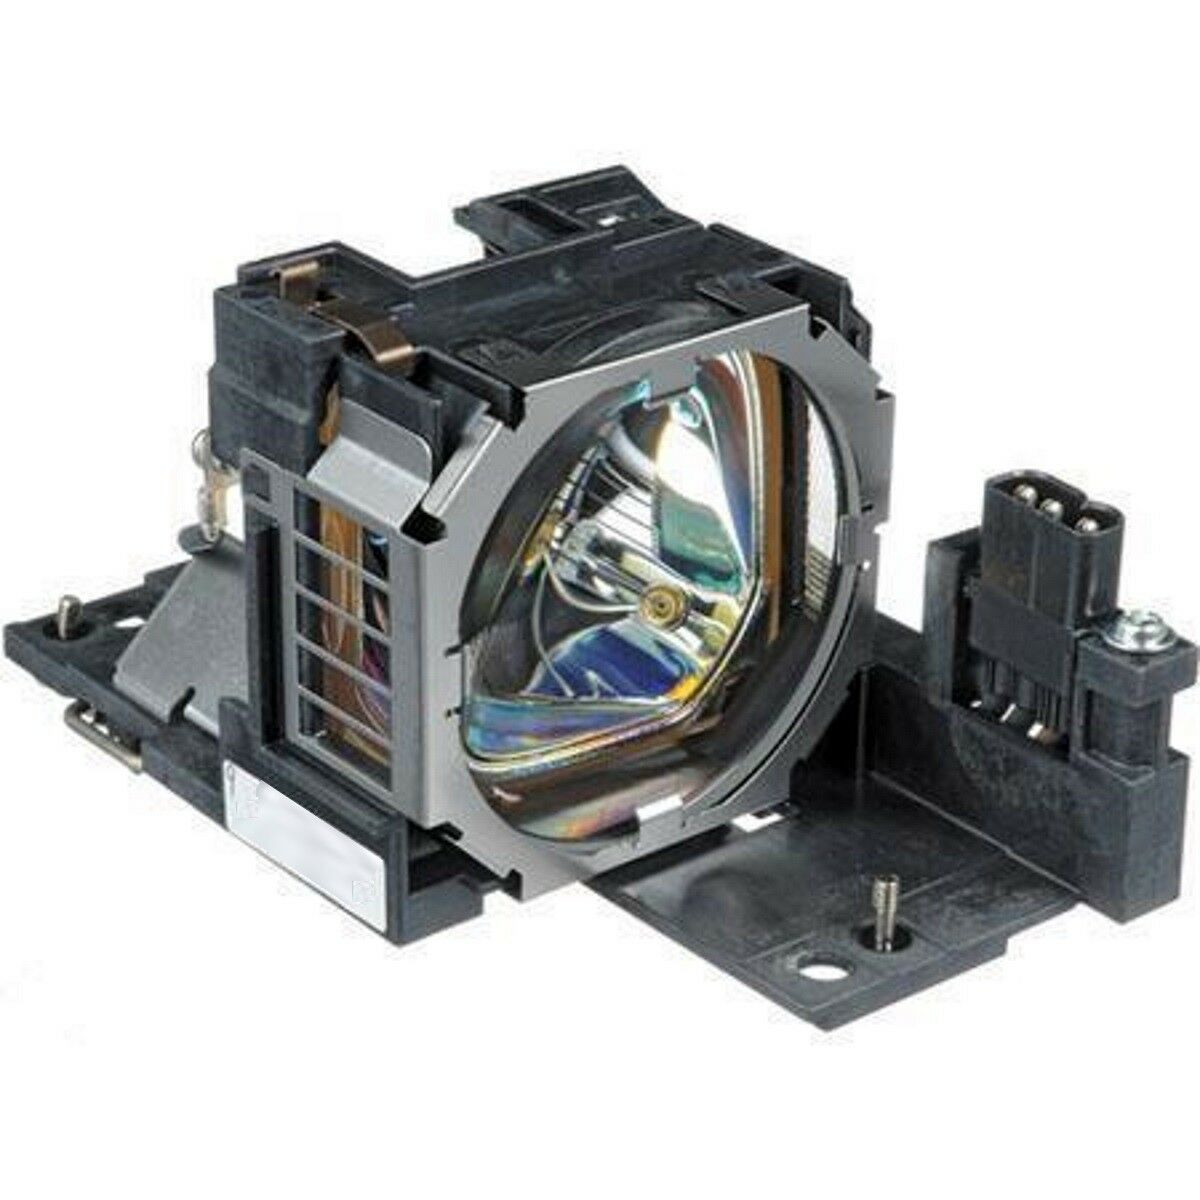 CANON RS-LP05 RSLP05 OEM FACTORY ORIGINAL LAMP FOR REALiS SX800 - Made By CANON